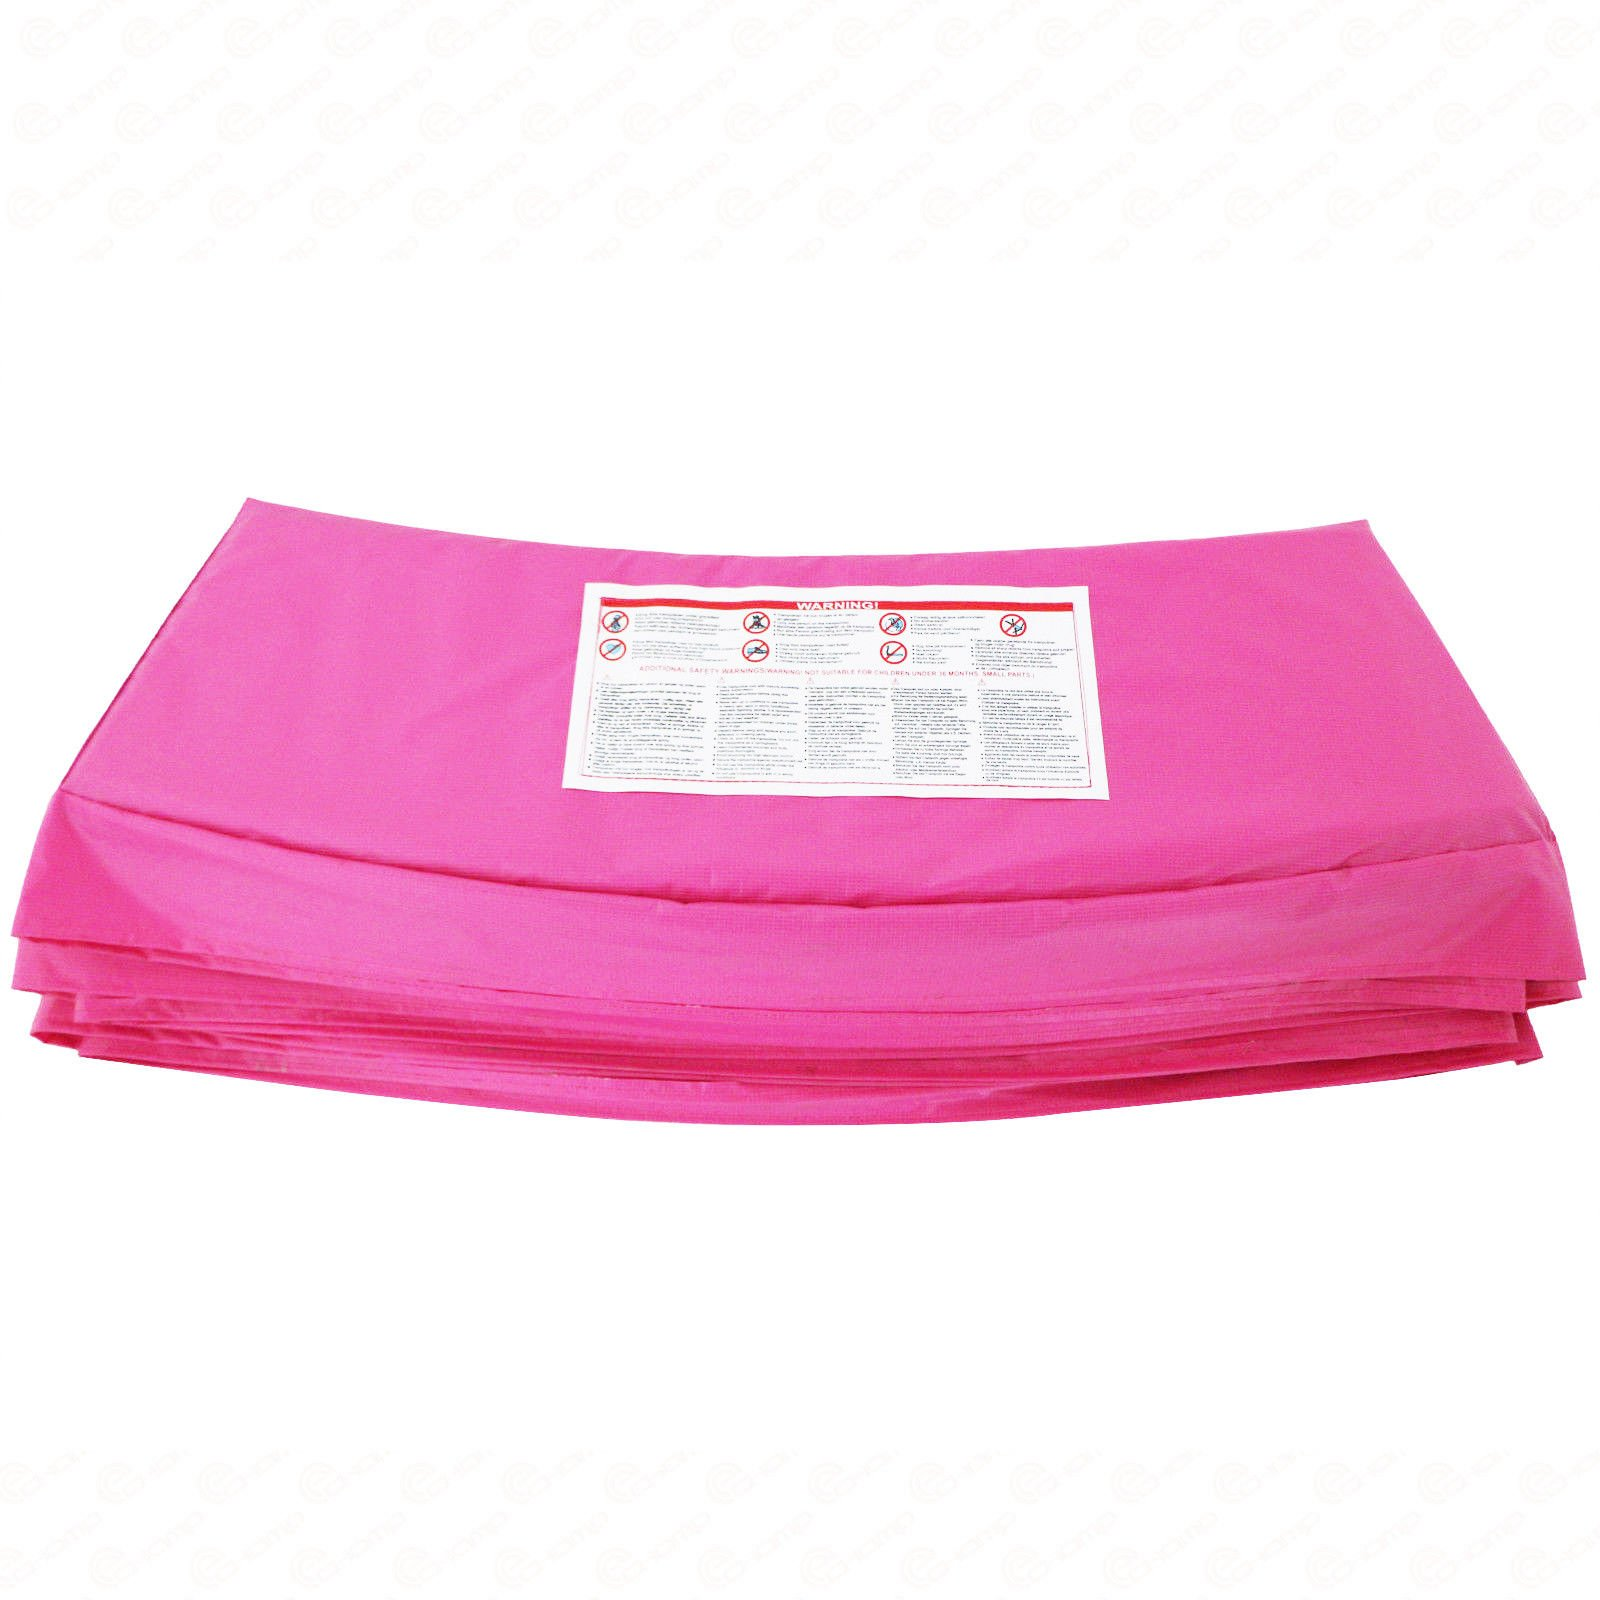 Rimdoc 12/14/15FT Trampoline Pad, PVC Trampoline Replacement Safety Pad,Waterproof Surround Edge Cover,Foam Round Frame Pad (Pink, 15FT)